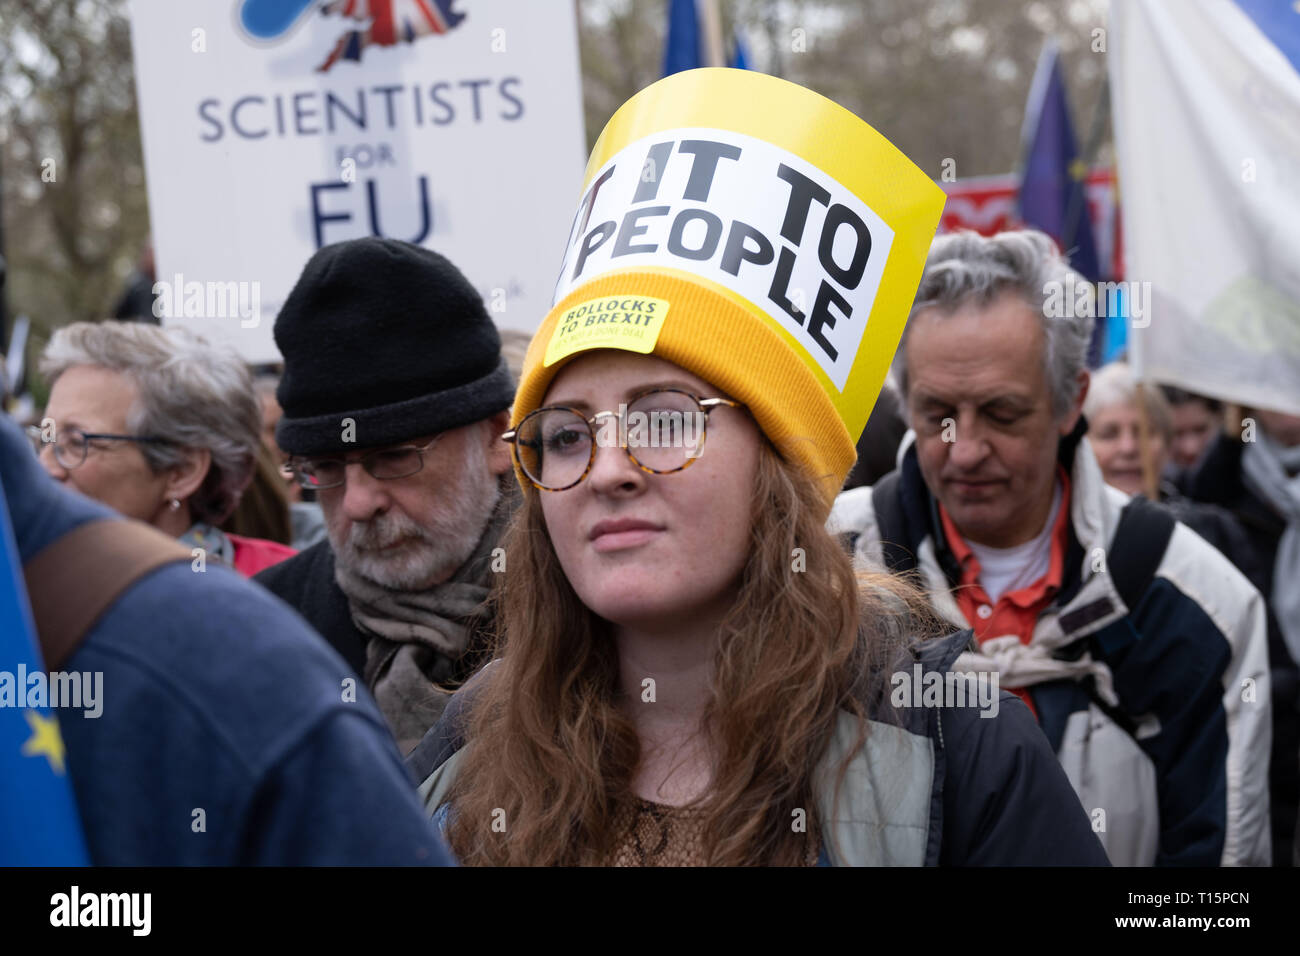 London, UK. 23rd Mar, 2019. Woman in crowd wearing Put it to the People yellow hat at protest march. London 23 March 2019 Credit: Chris Moos/Alamy Live News Stock Photo